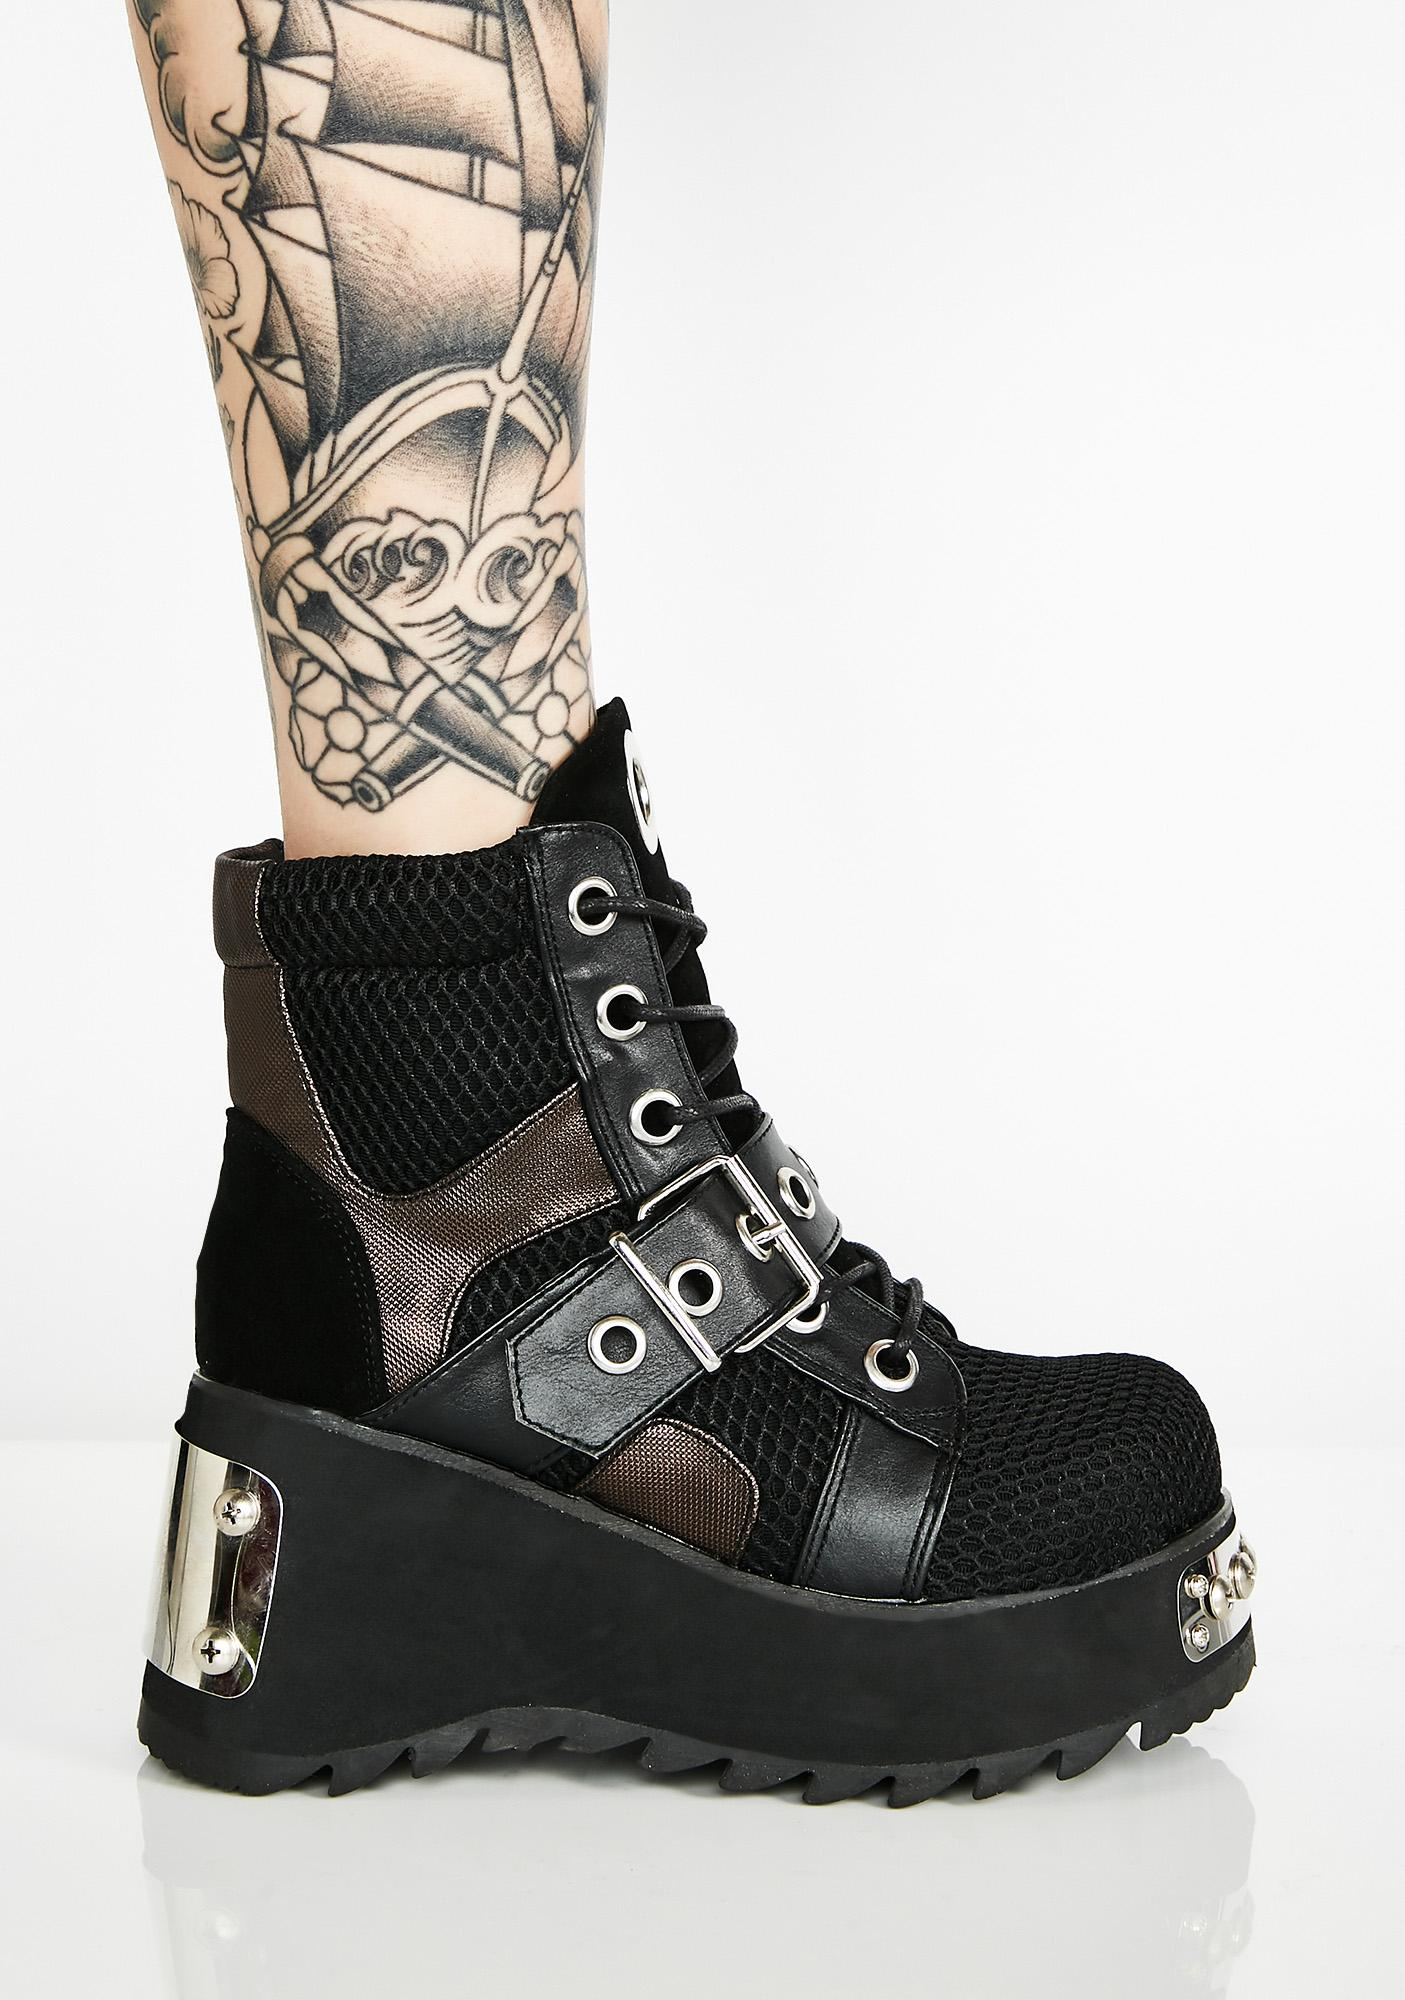 Demonia In High Demand Platform Boots